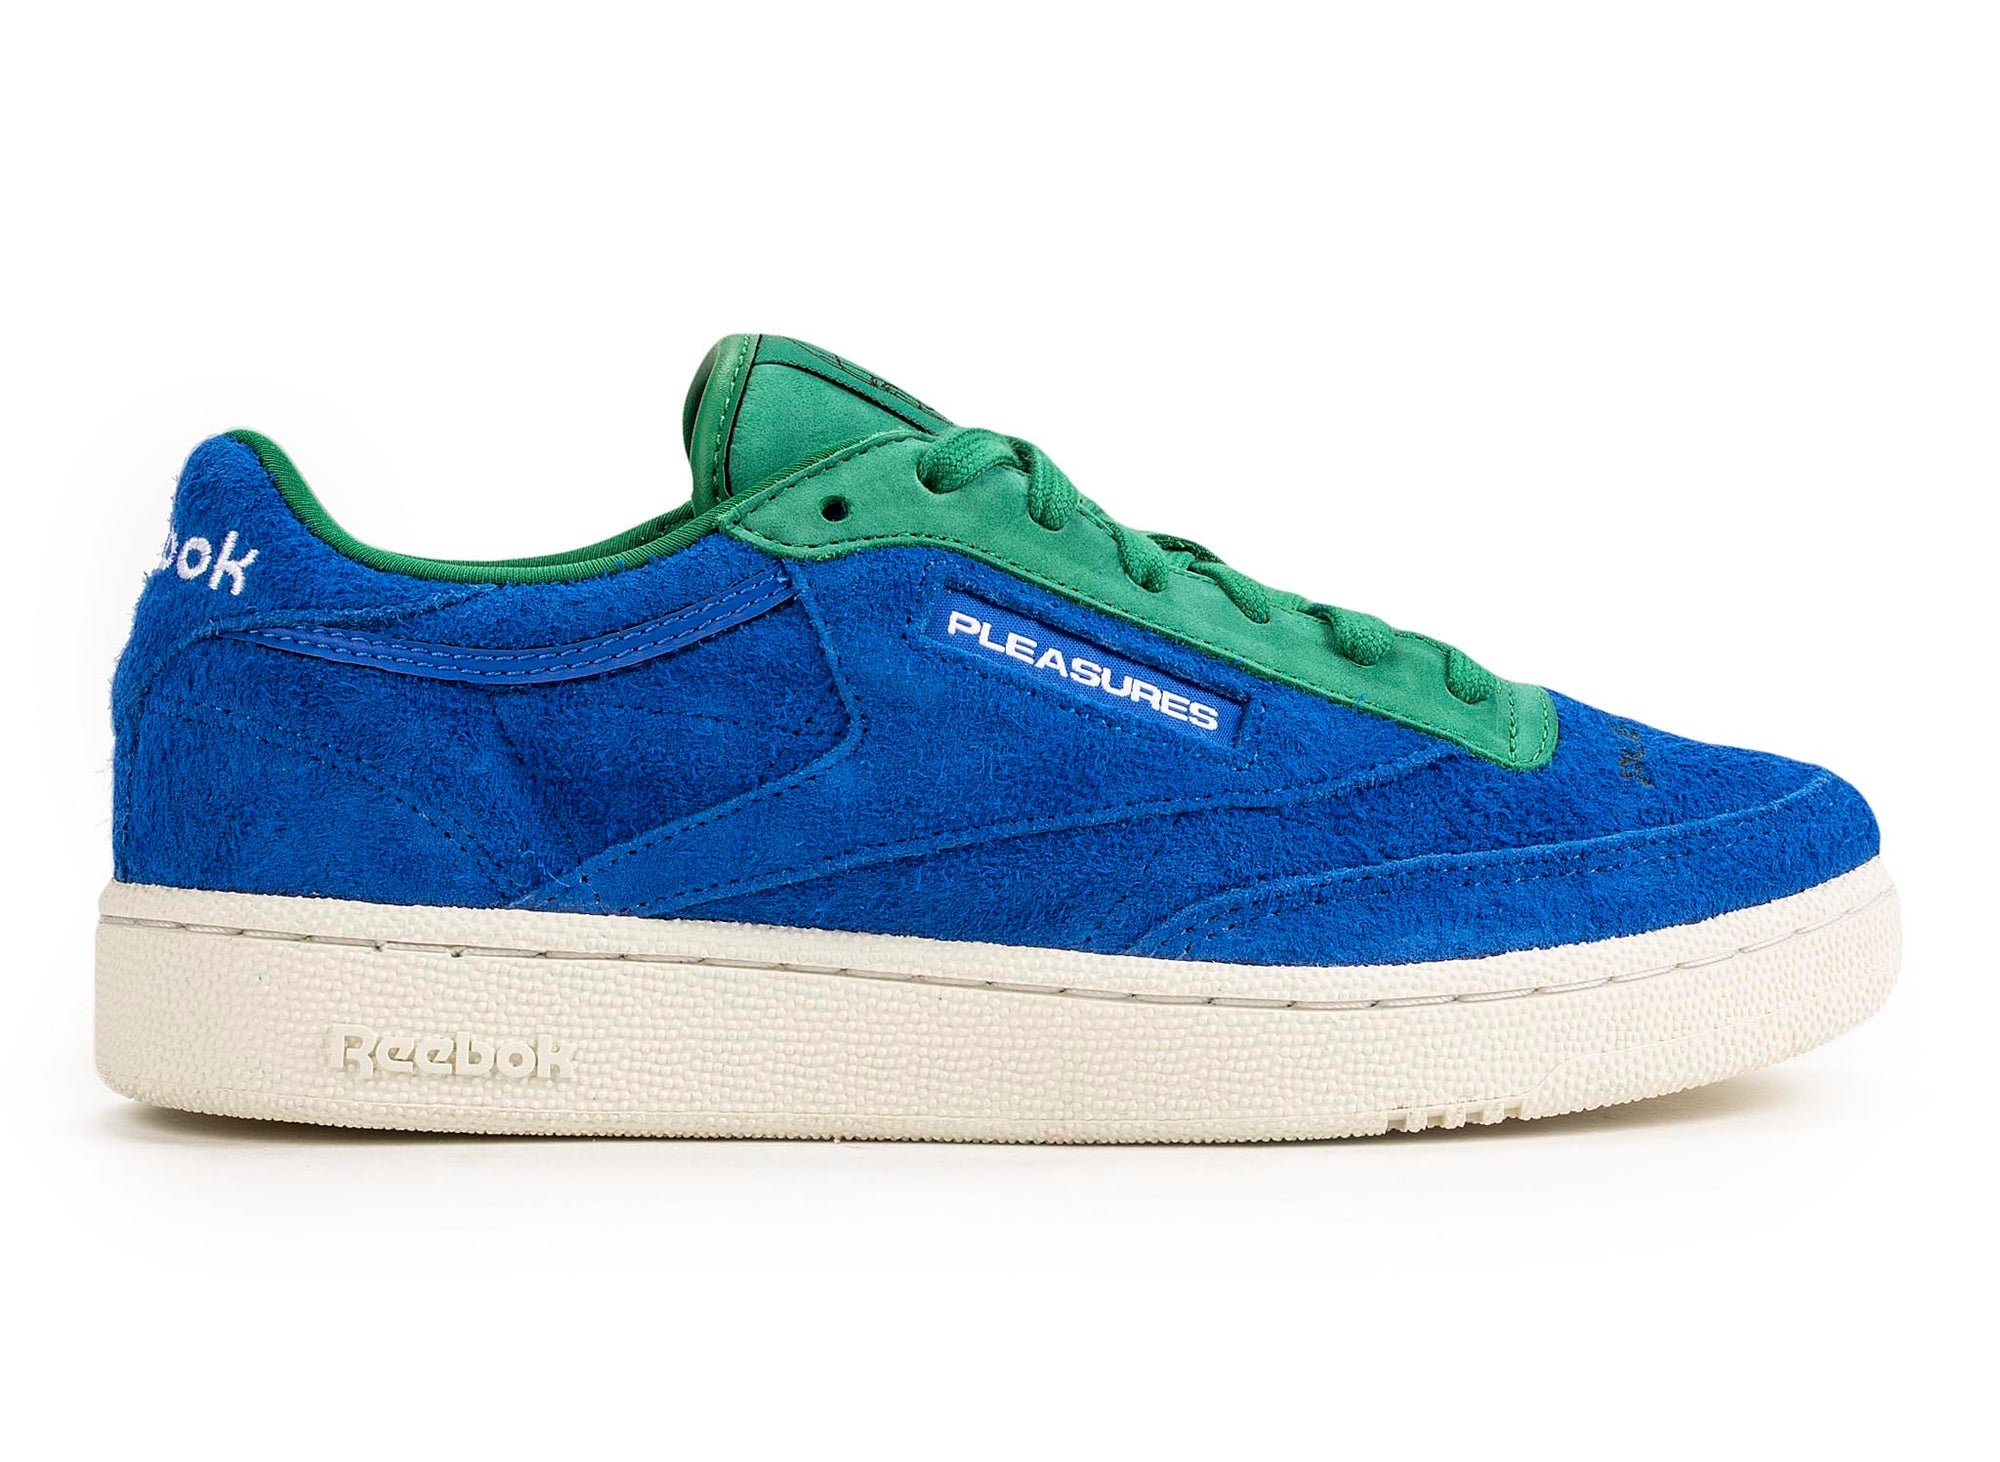 REEBOK CLUB C 85 PLEASURES